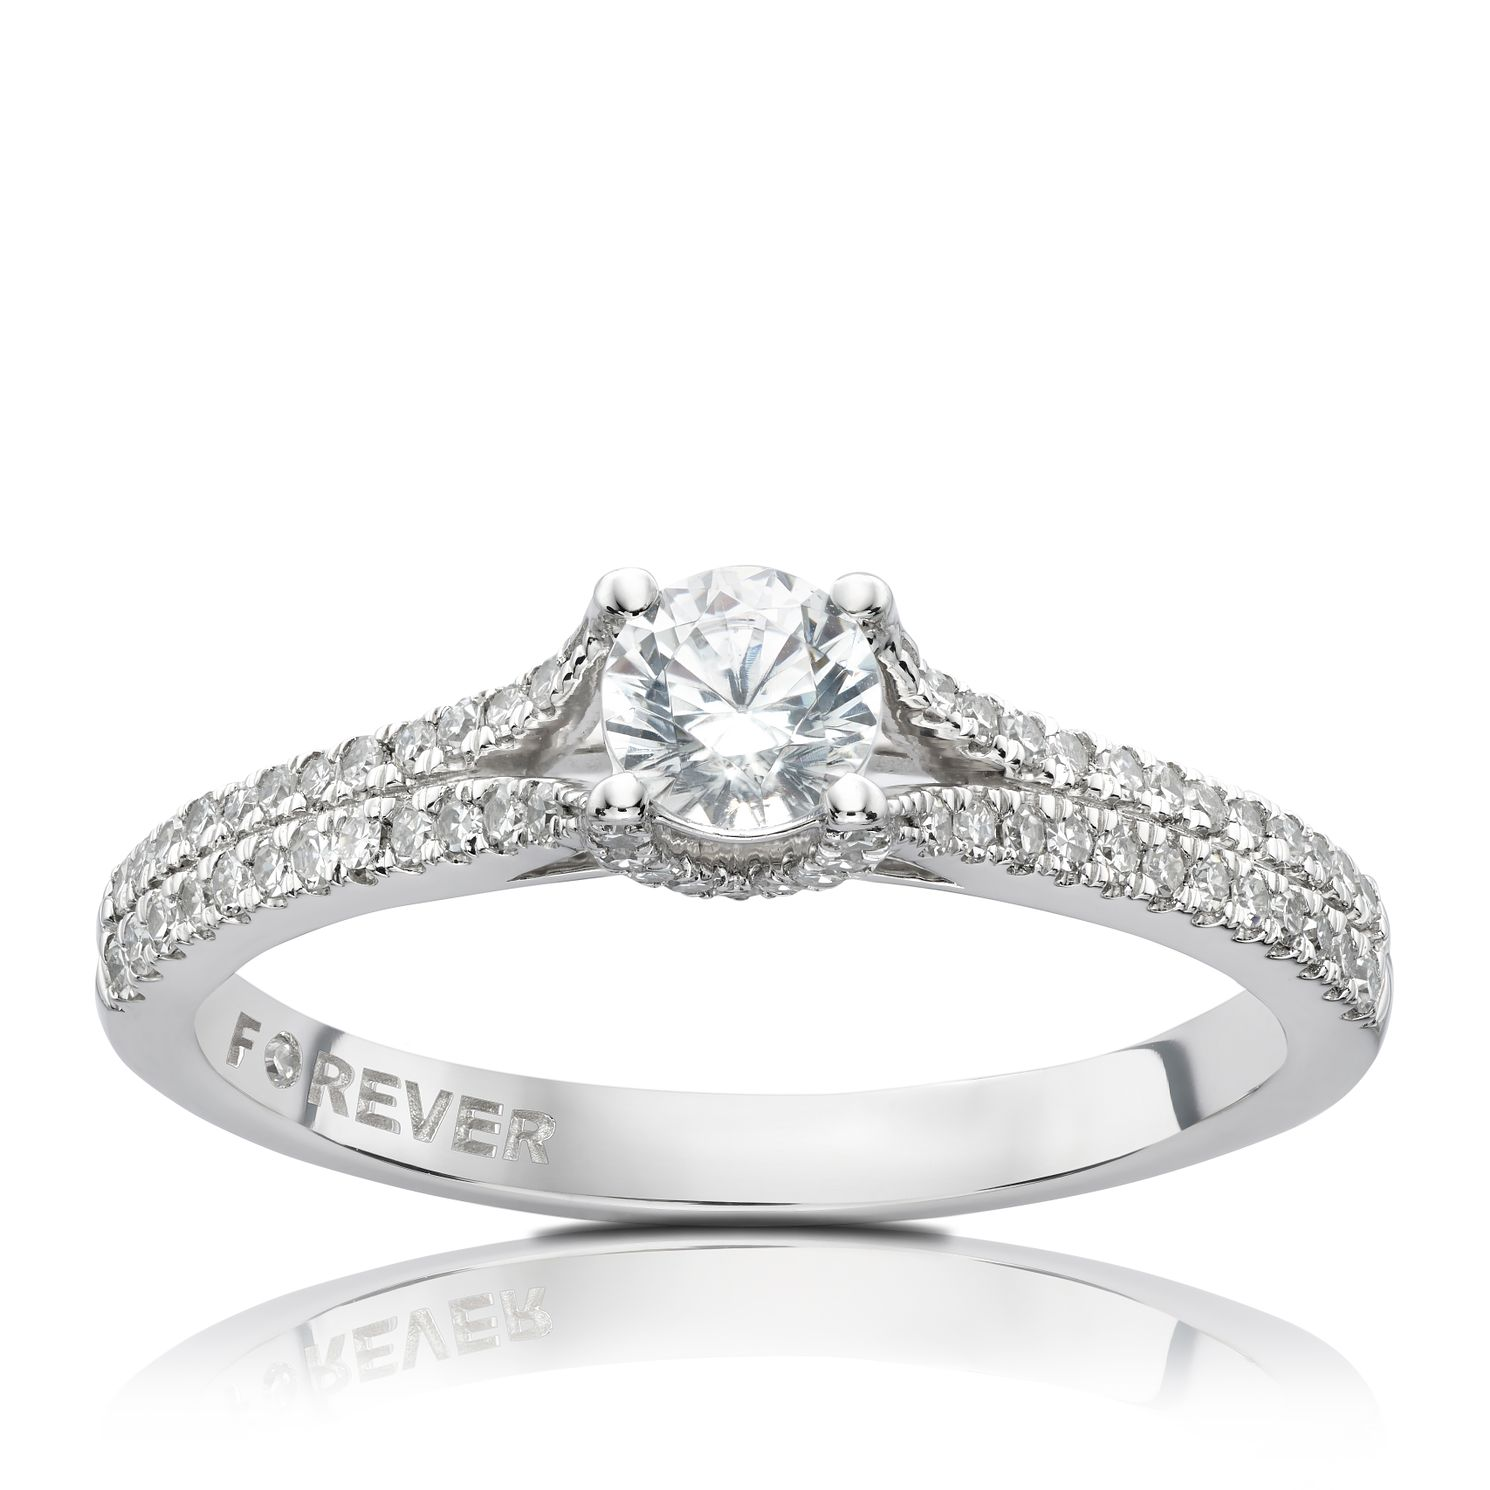 Platinum & 1/2ct Forever Diamond Ring - Product number 5068126